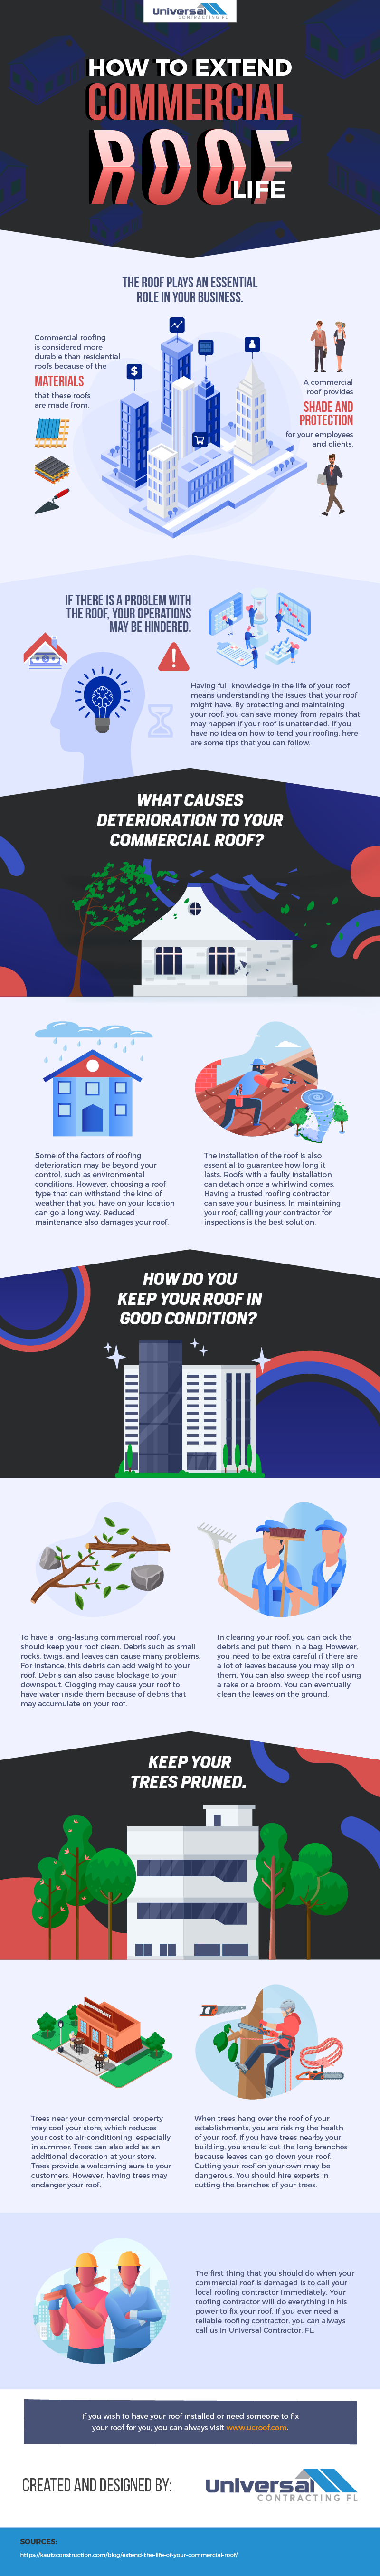 How to Extend Commercial Roof Life - Infographic